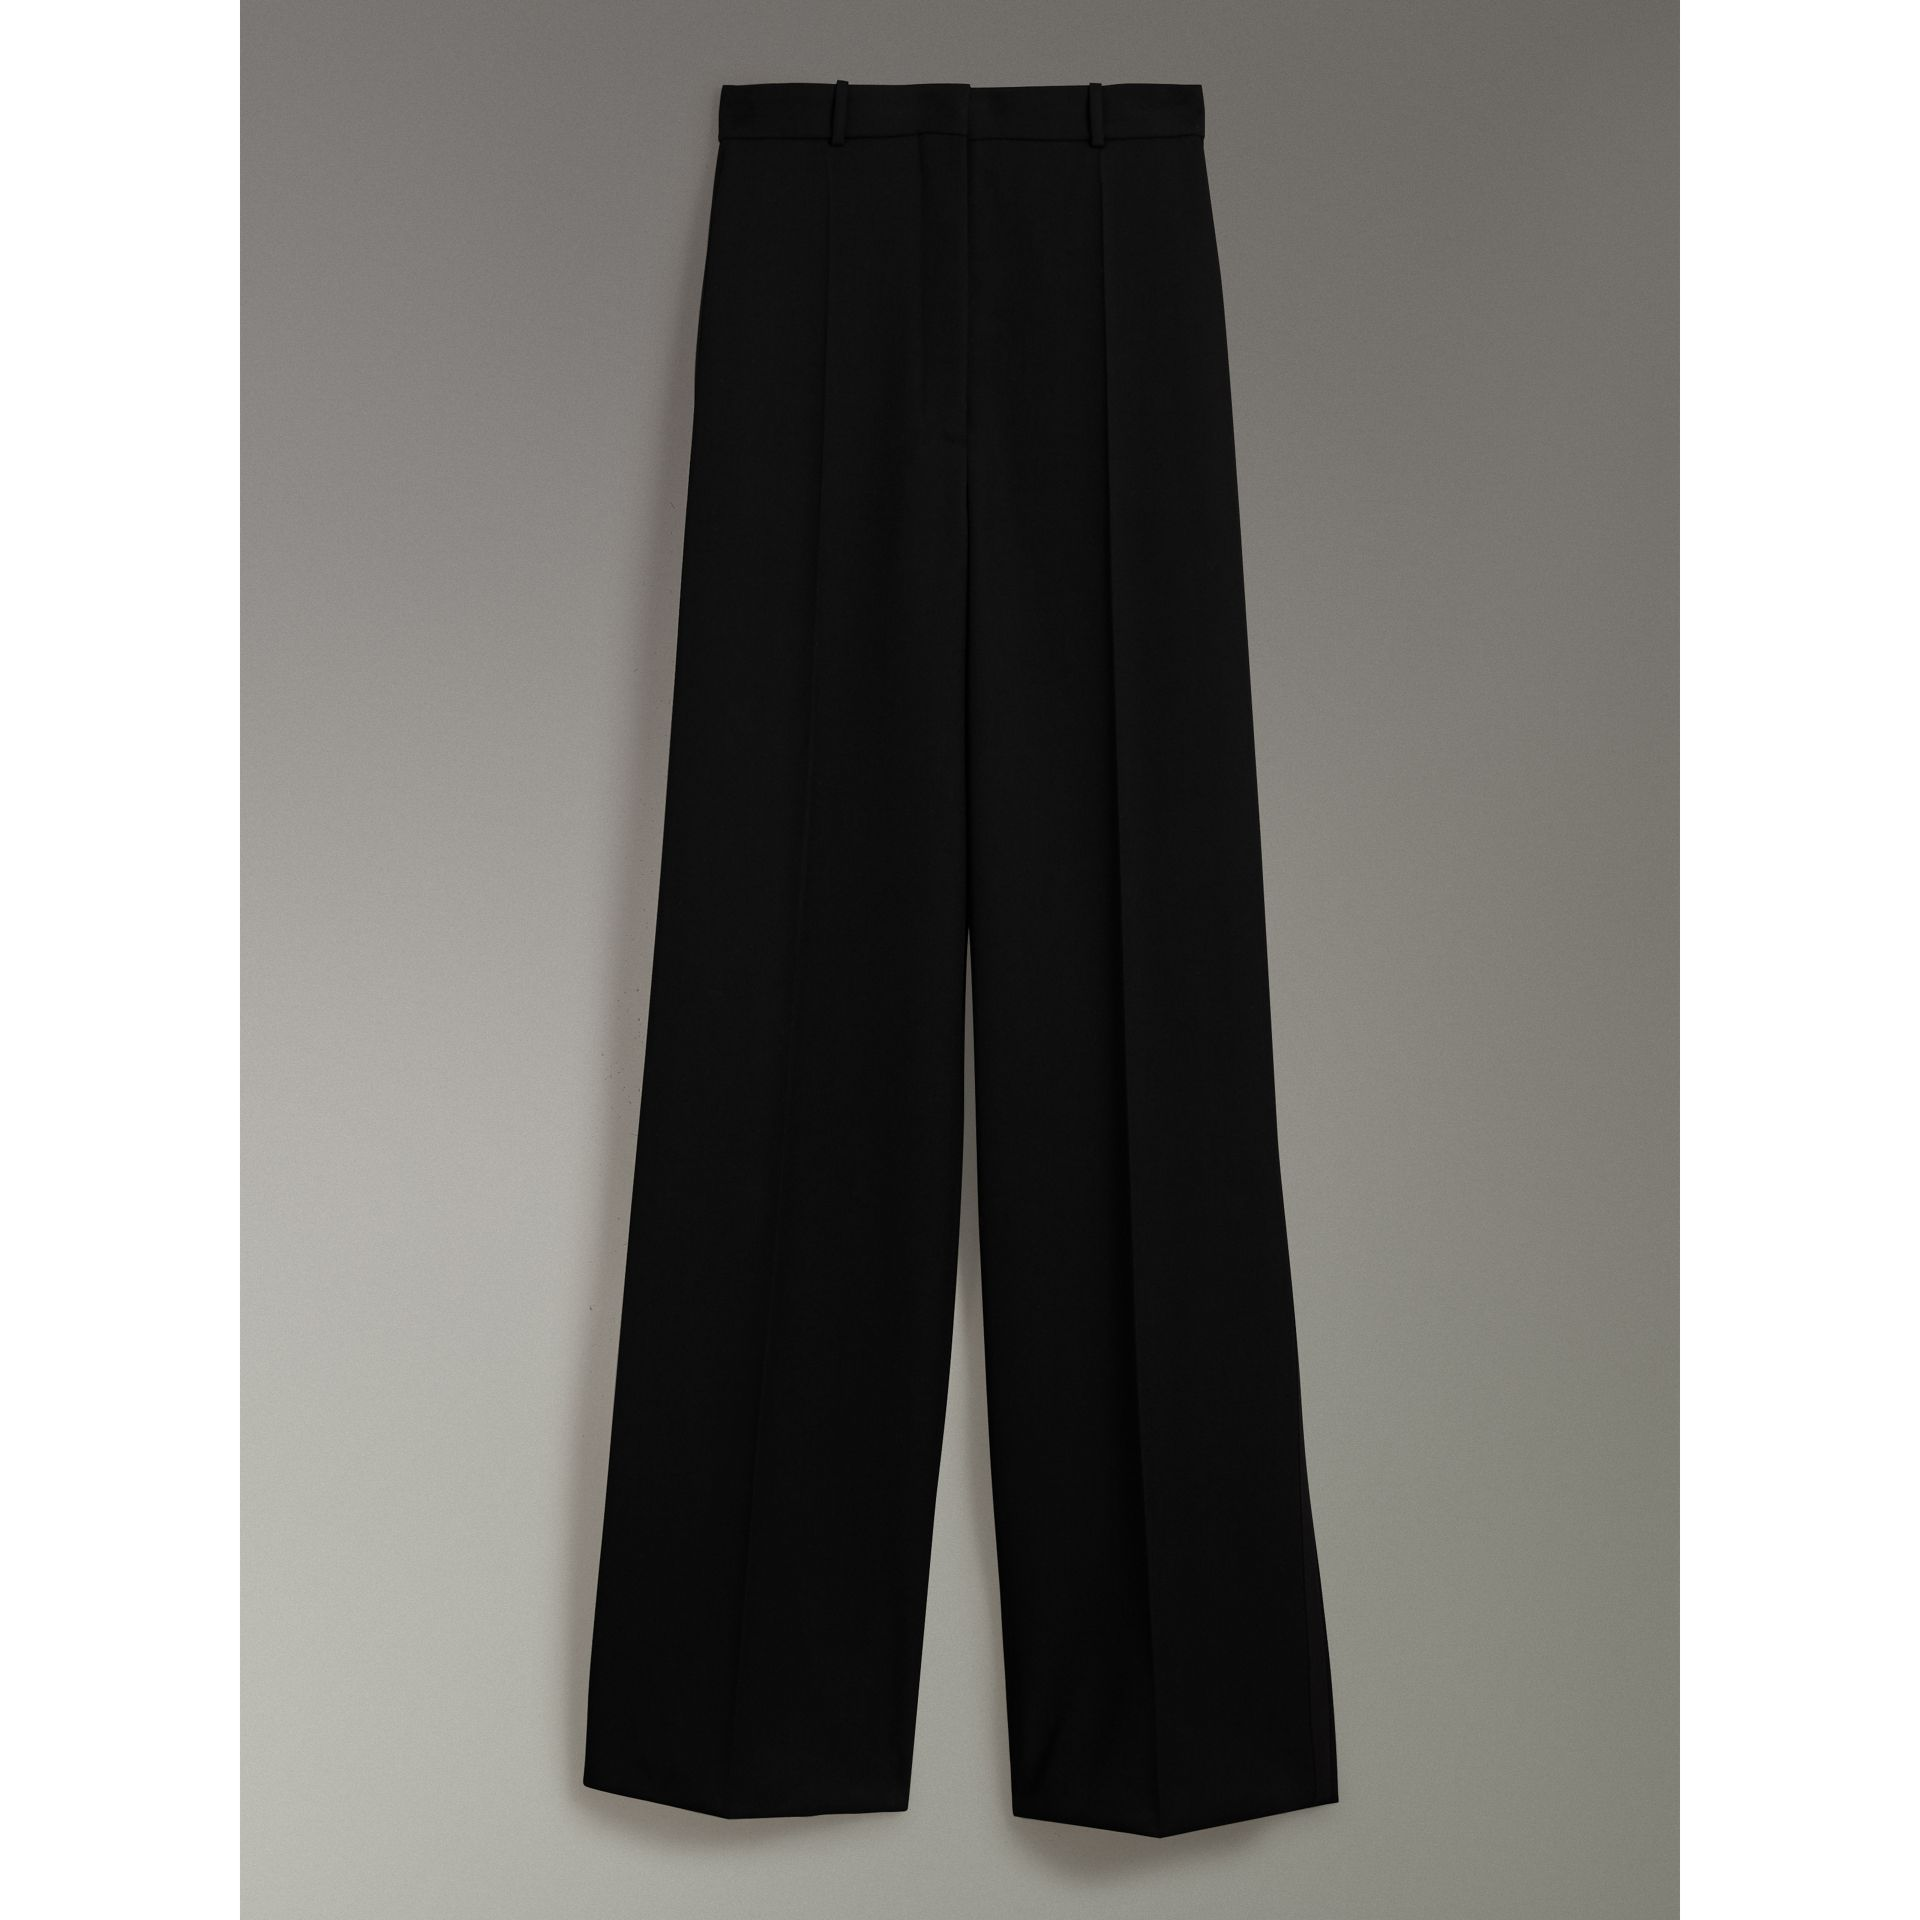 Wool High-waisted Trousers in Black - Women | Burberry United Kingdom - gallery image 3